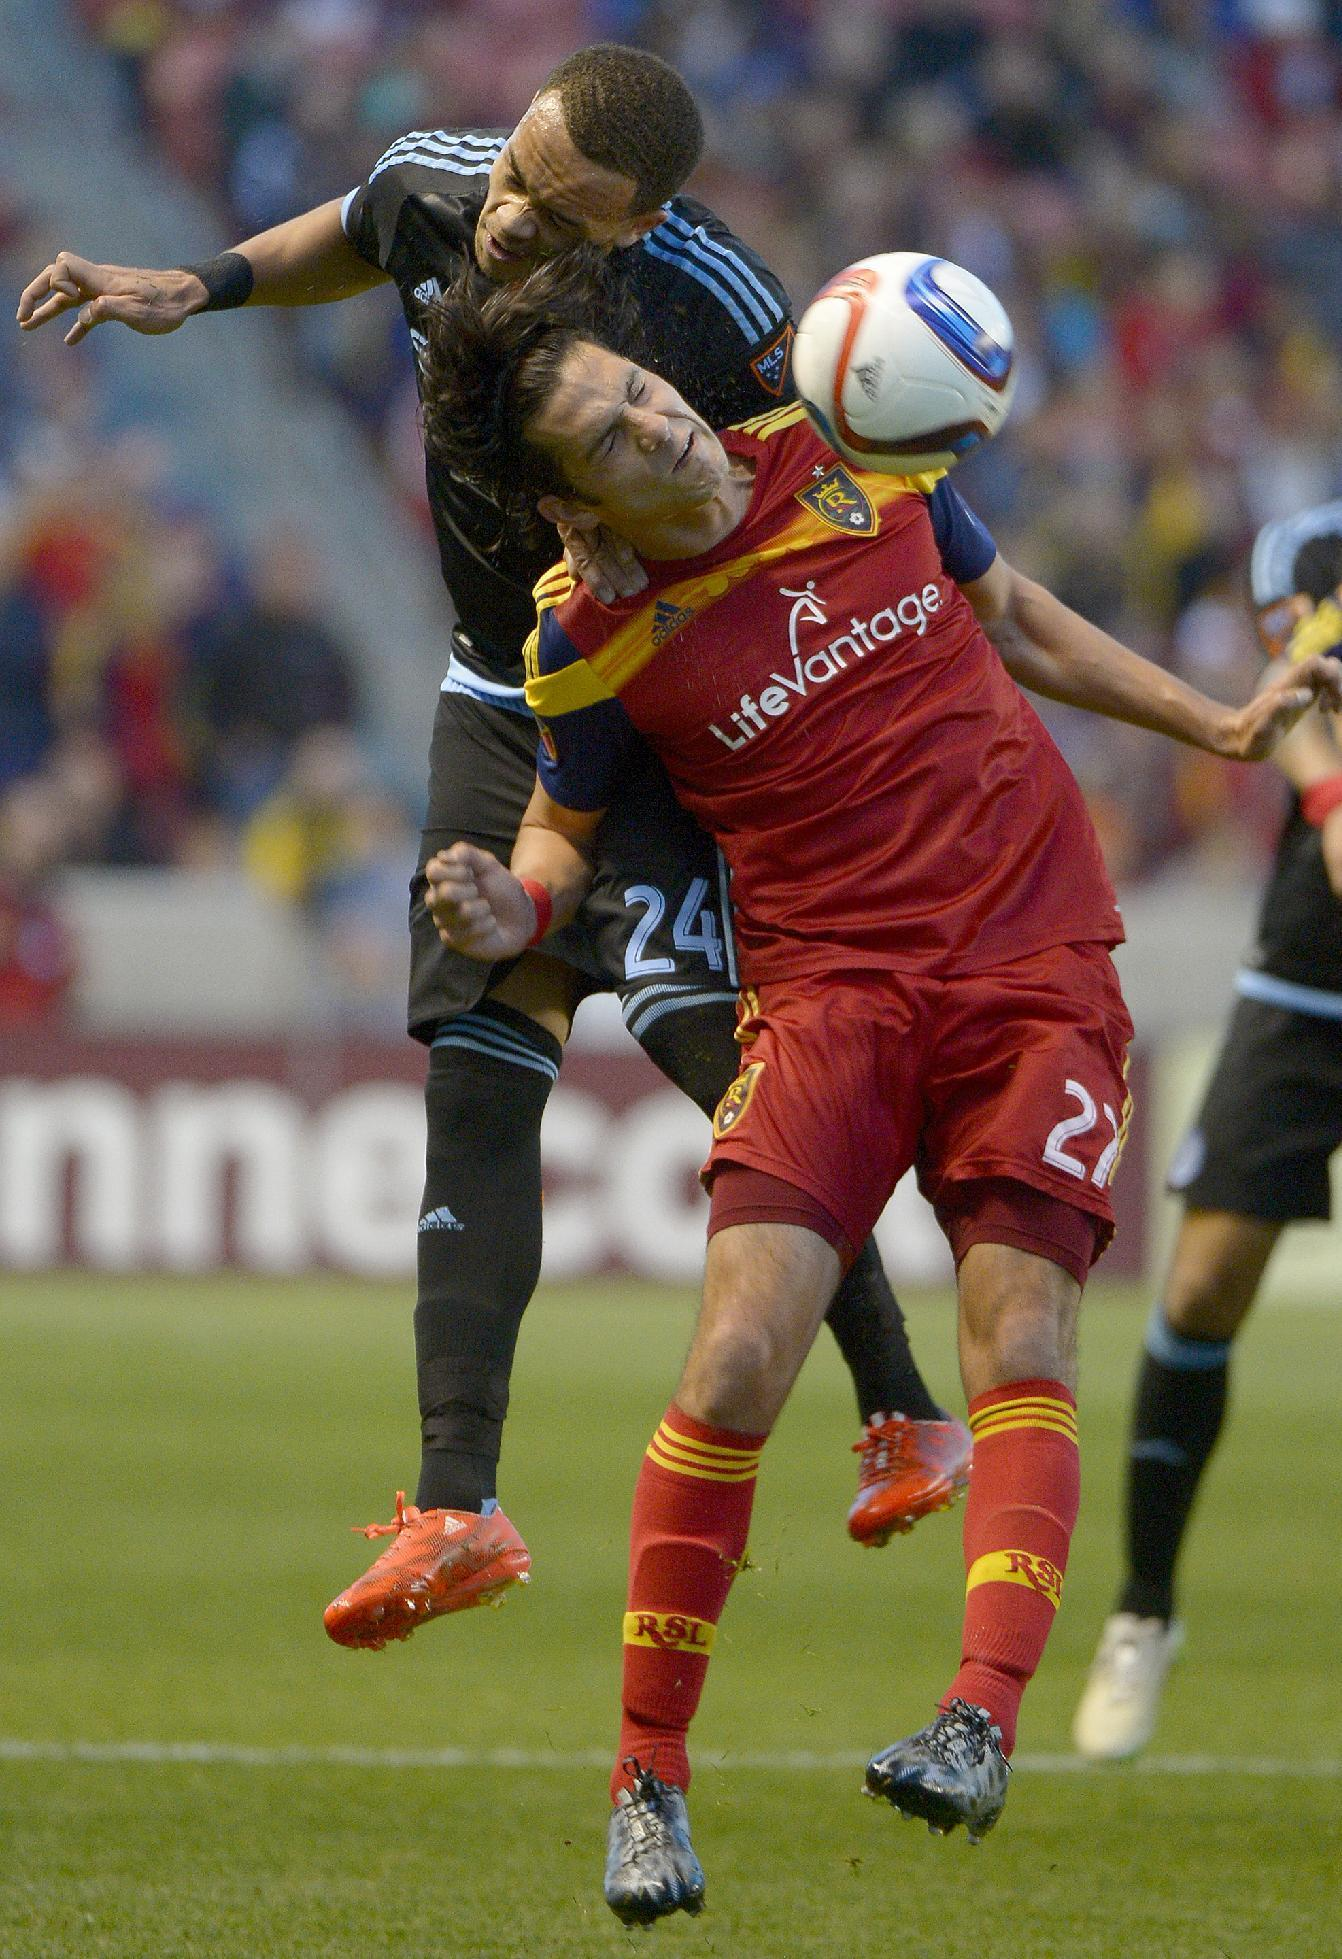 Real Salt Lake extends NYCFC's winless streak to 10 games